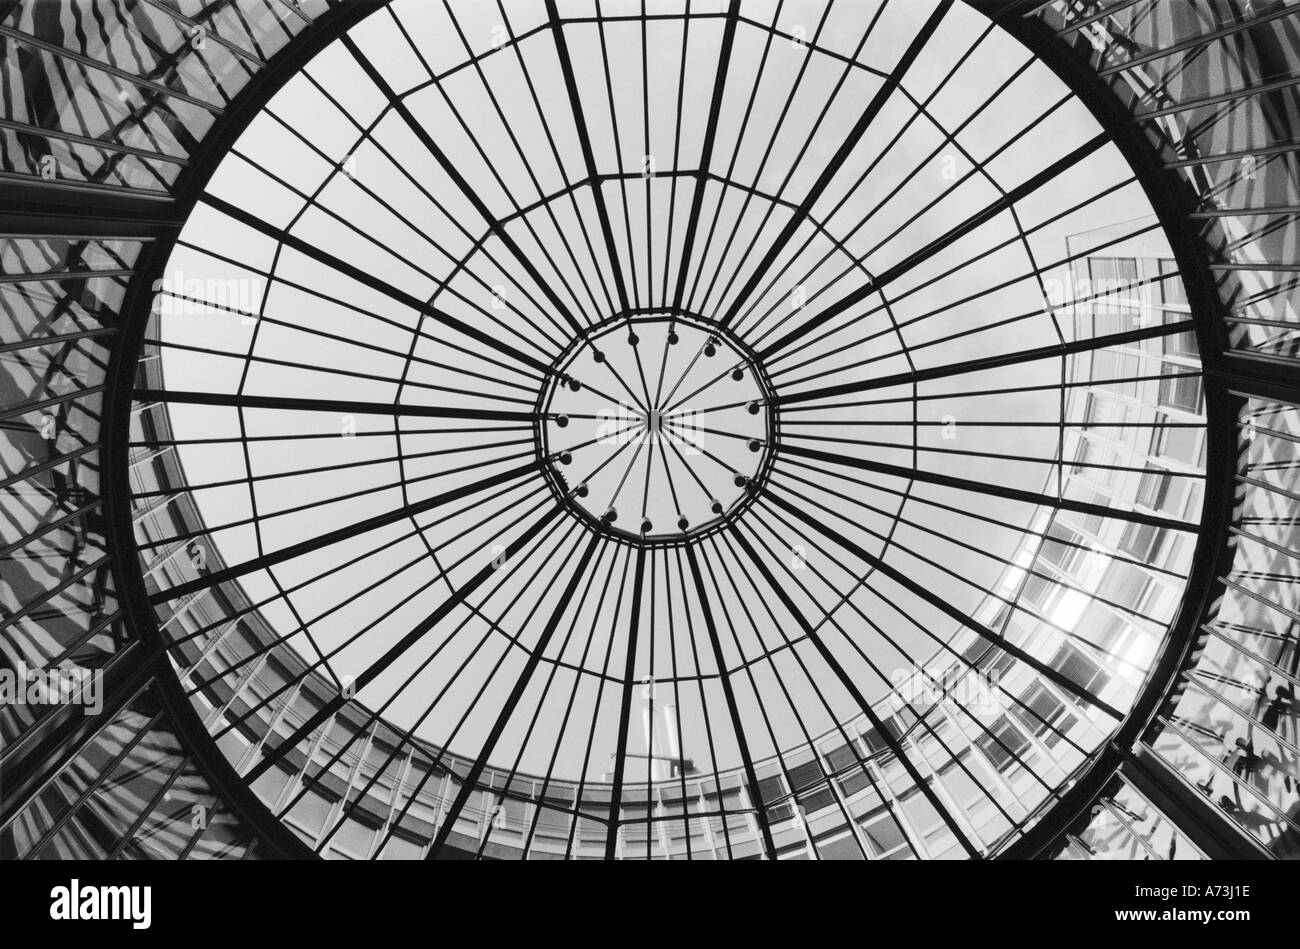 Europe, Switzerland, Zurich. Glass dome of the Stock Exchange Borse - Stock Image